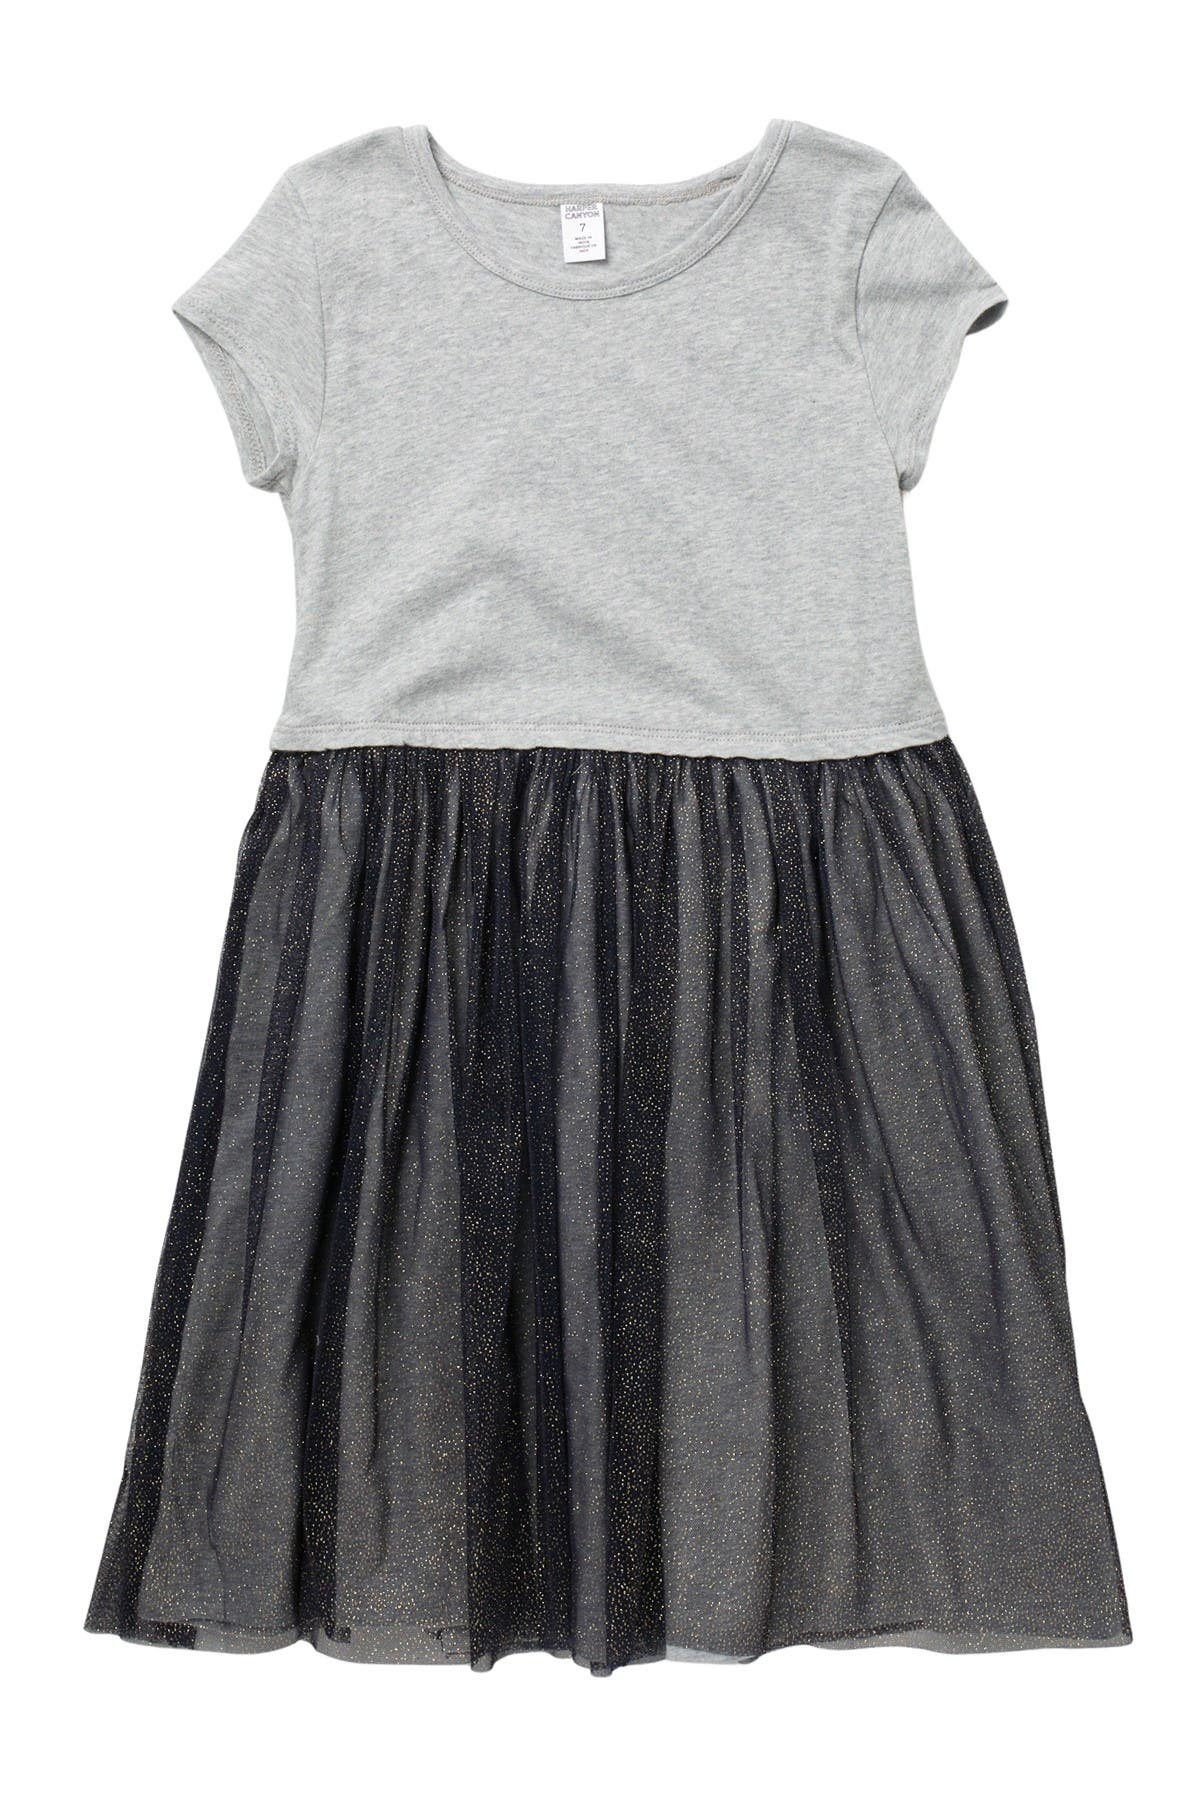 Image of Harper Canyon Fun Play Tulle Dress